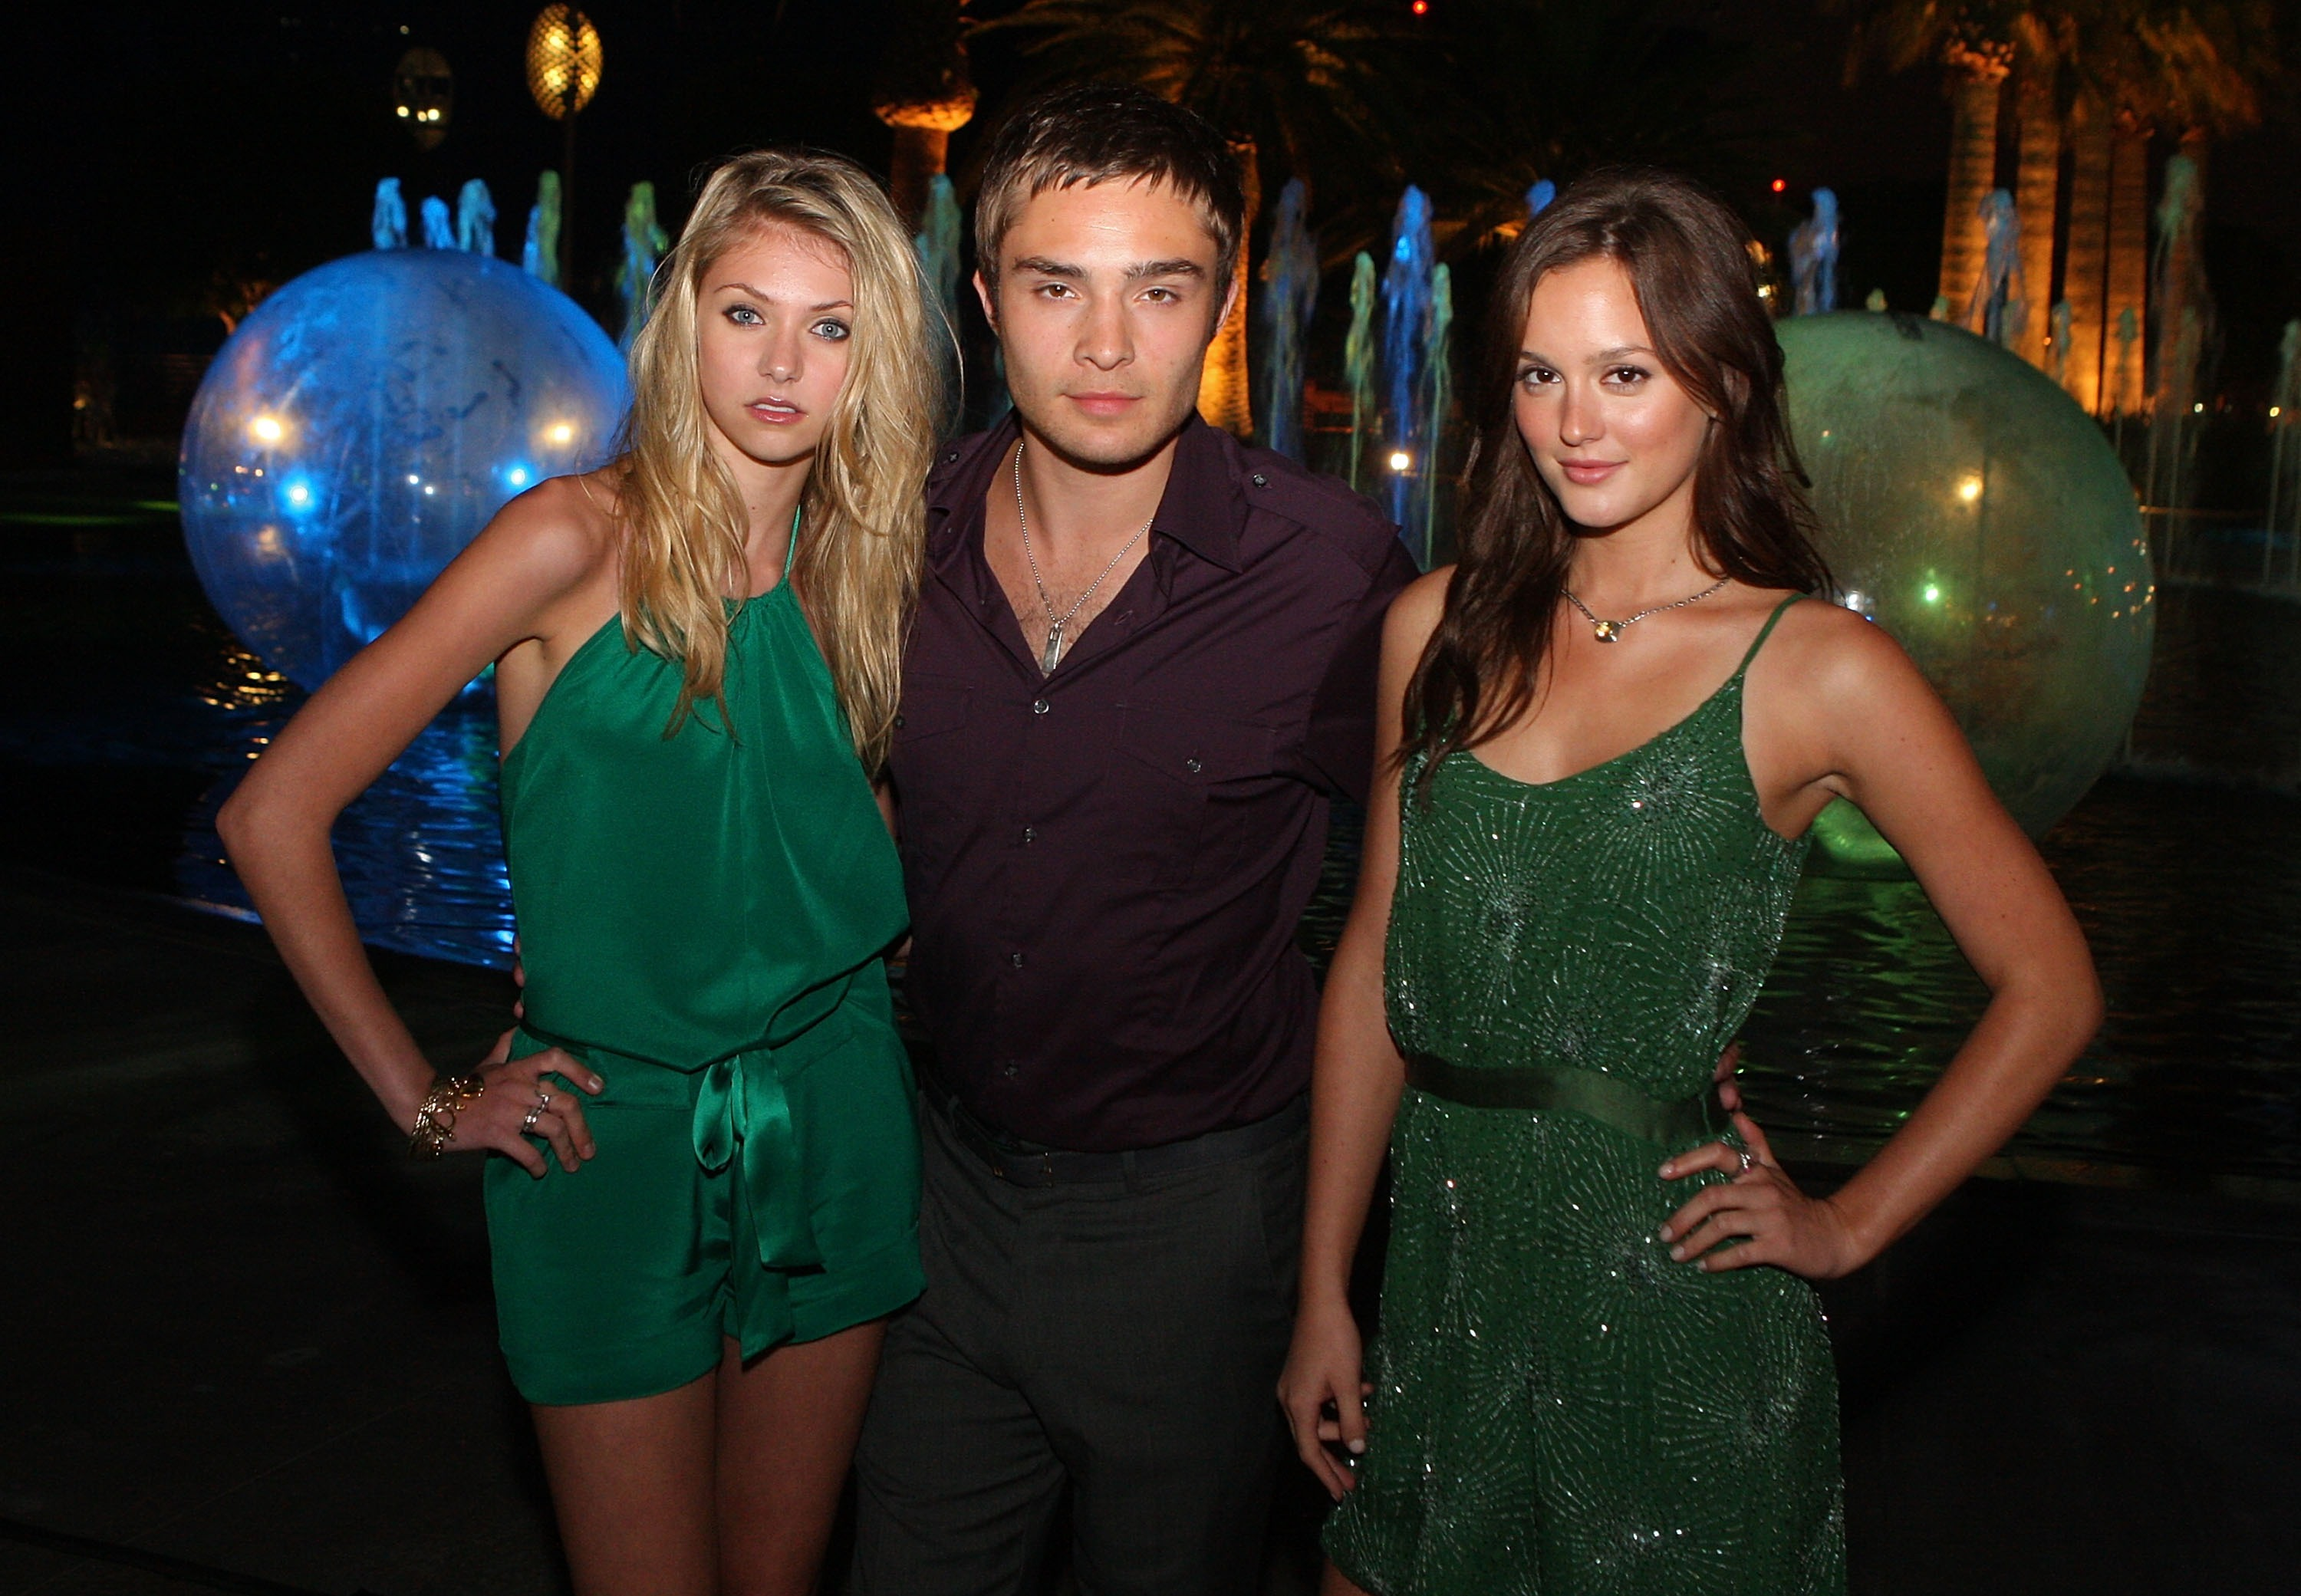 Ed Westwick found himself surrounded